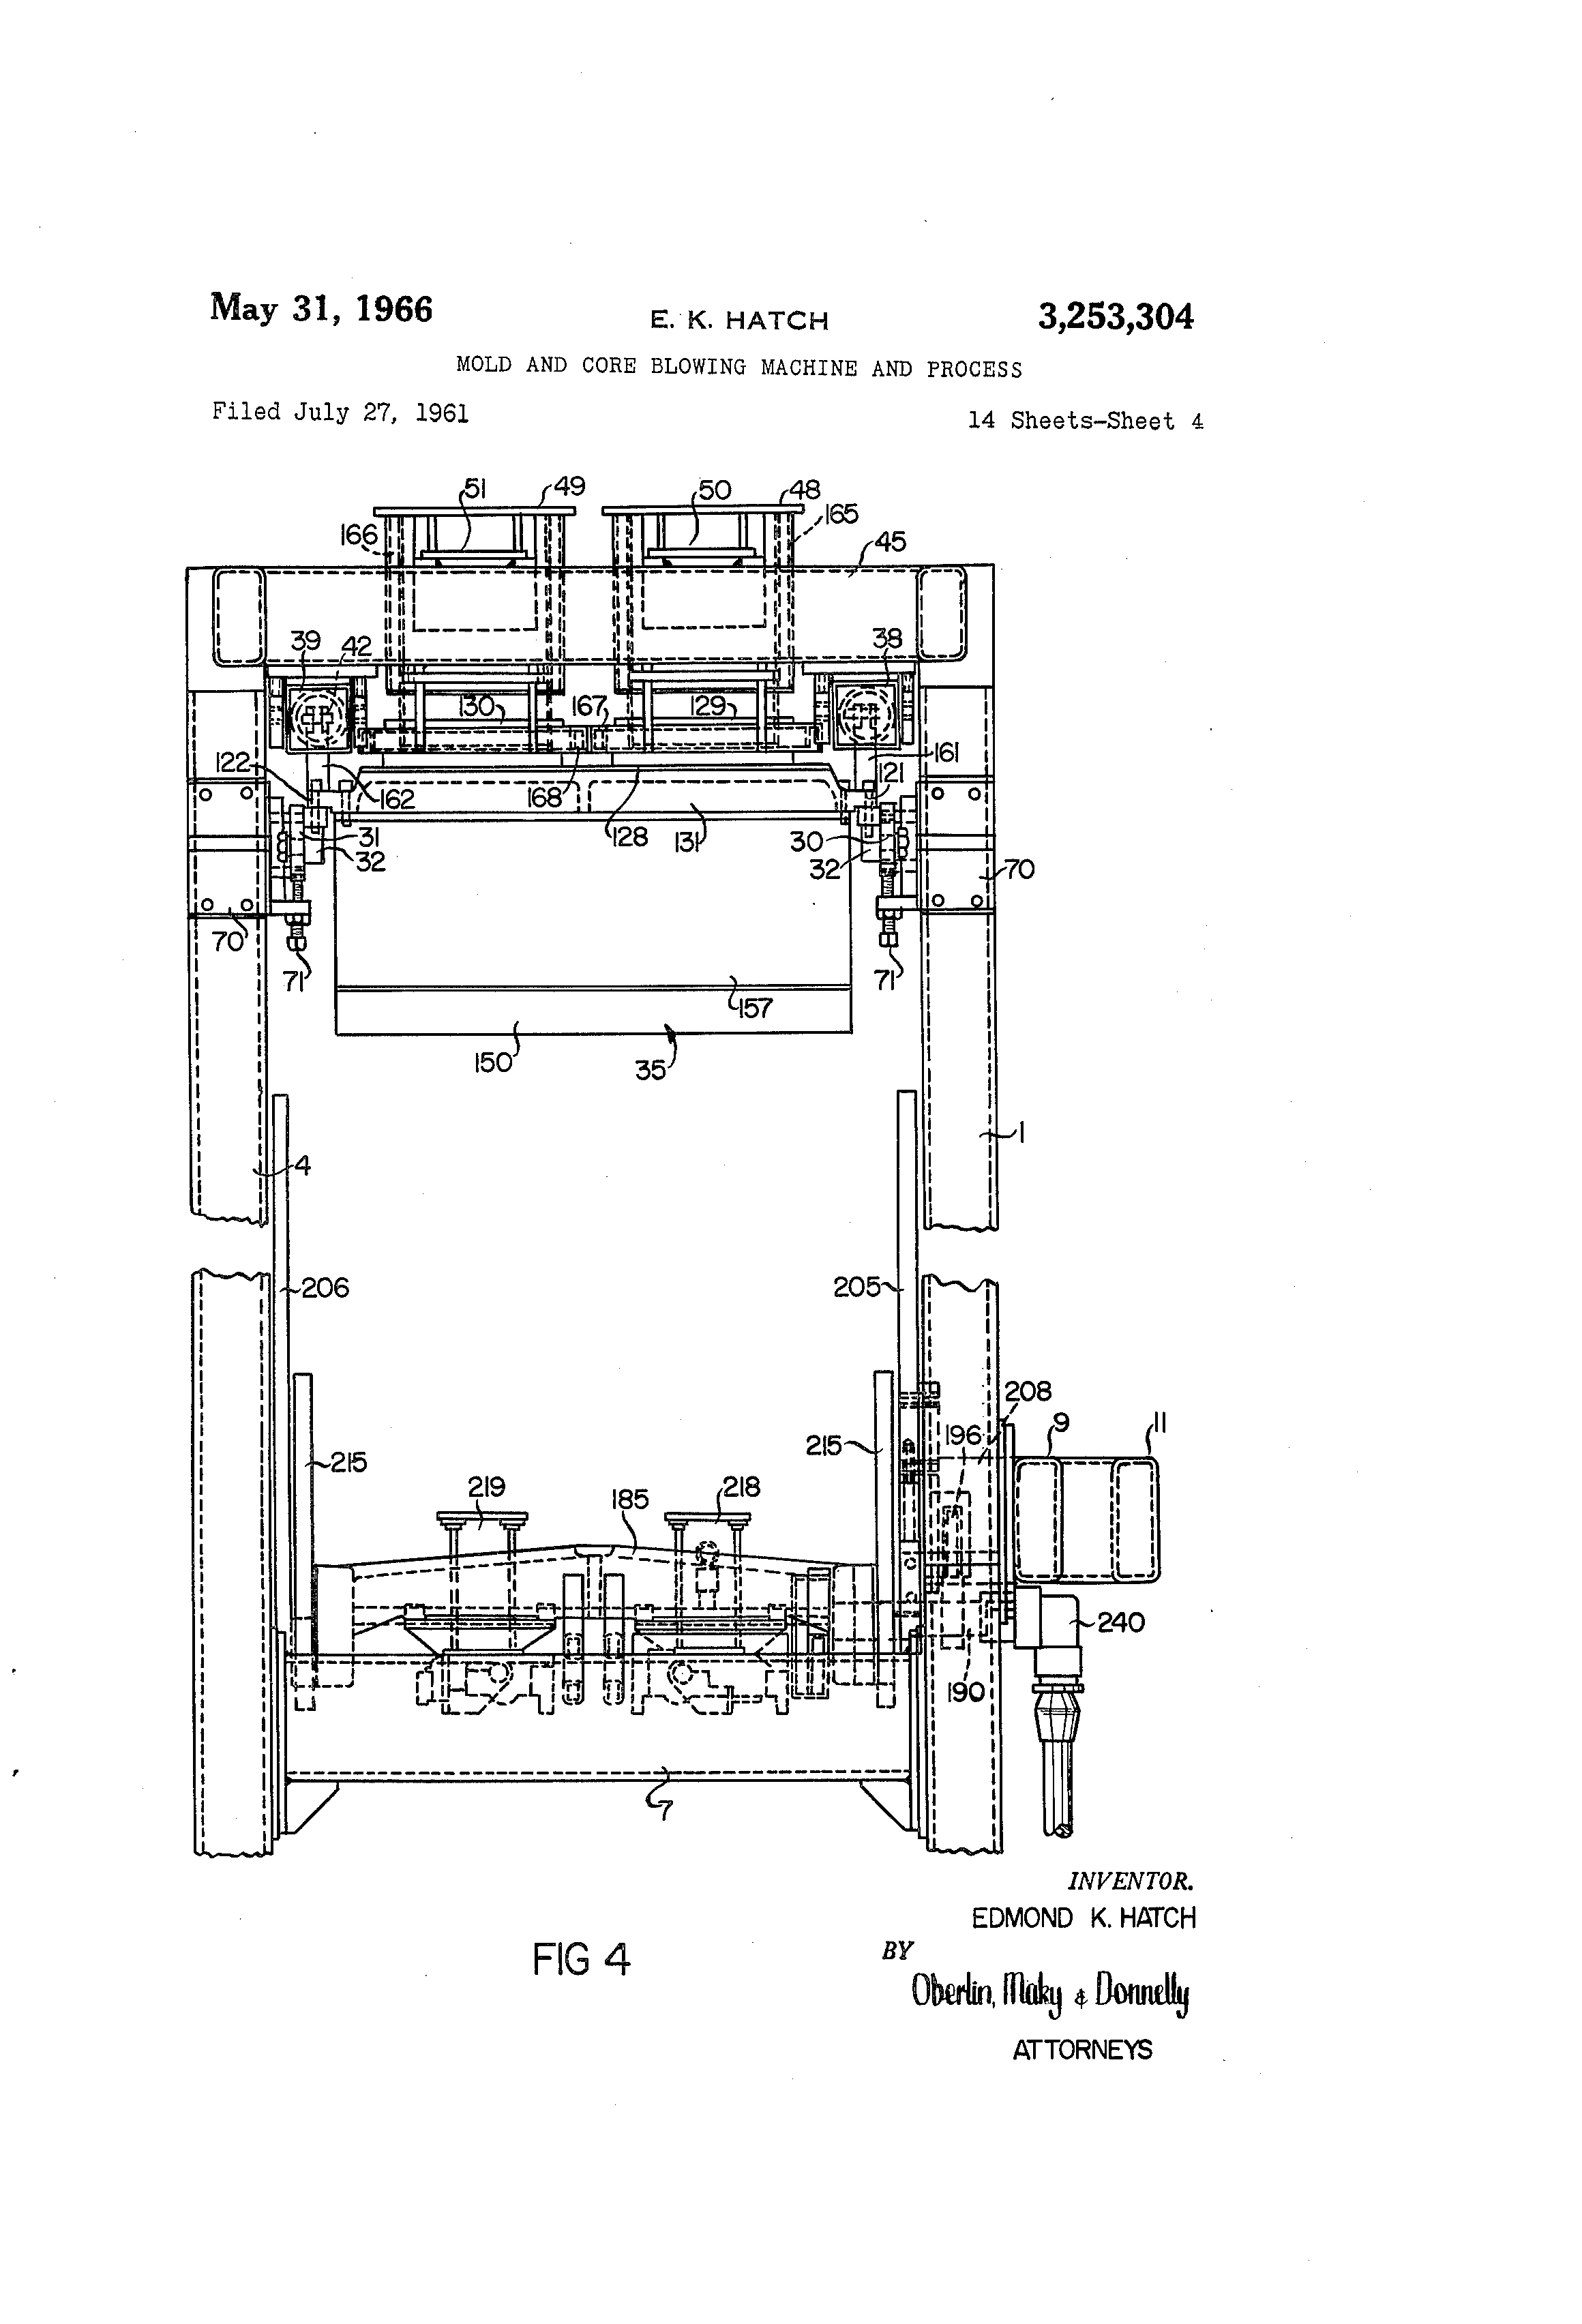 US3253304 3 patent us3253304 mold and core blowing machine and process  at creativeand.co